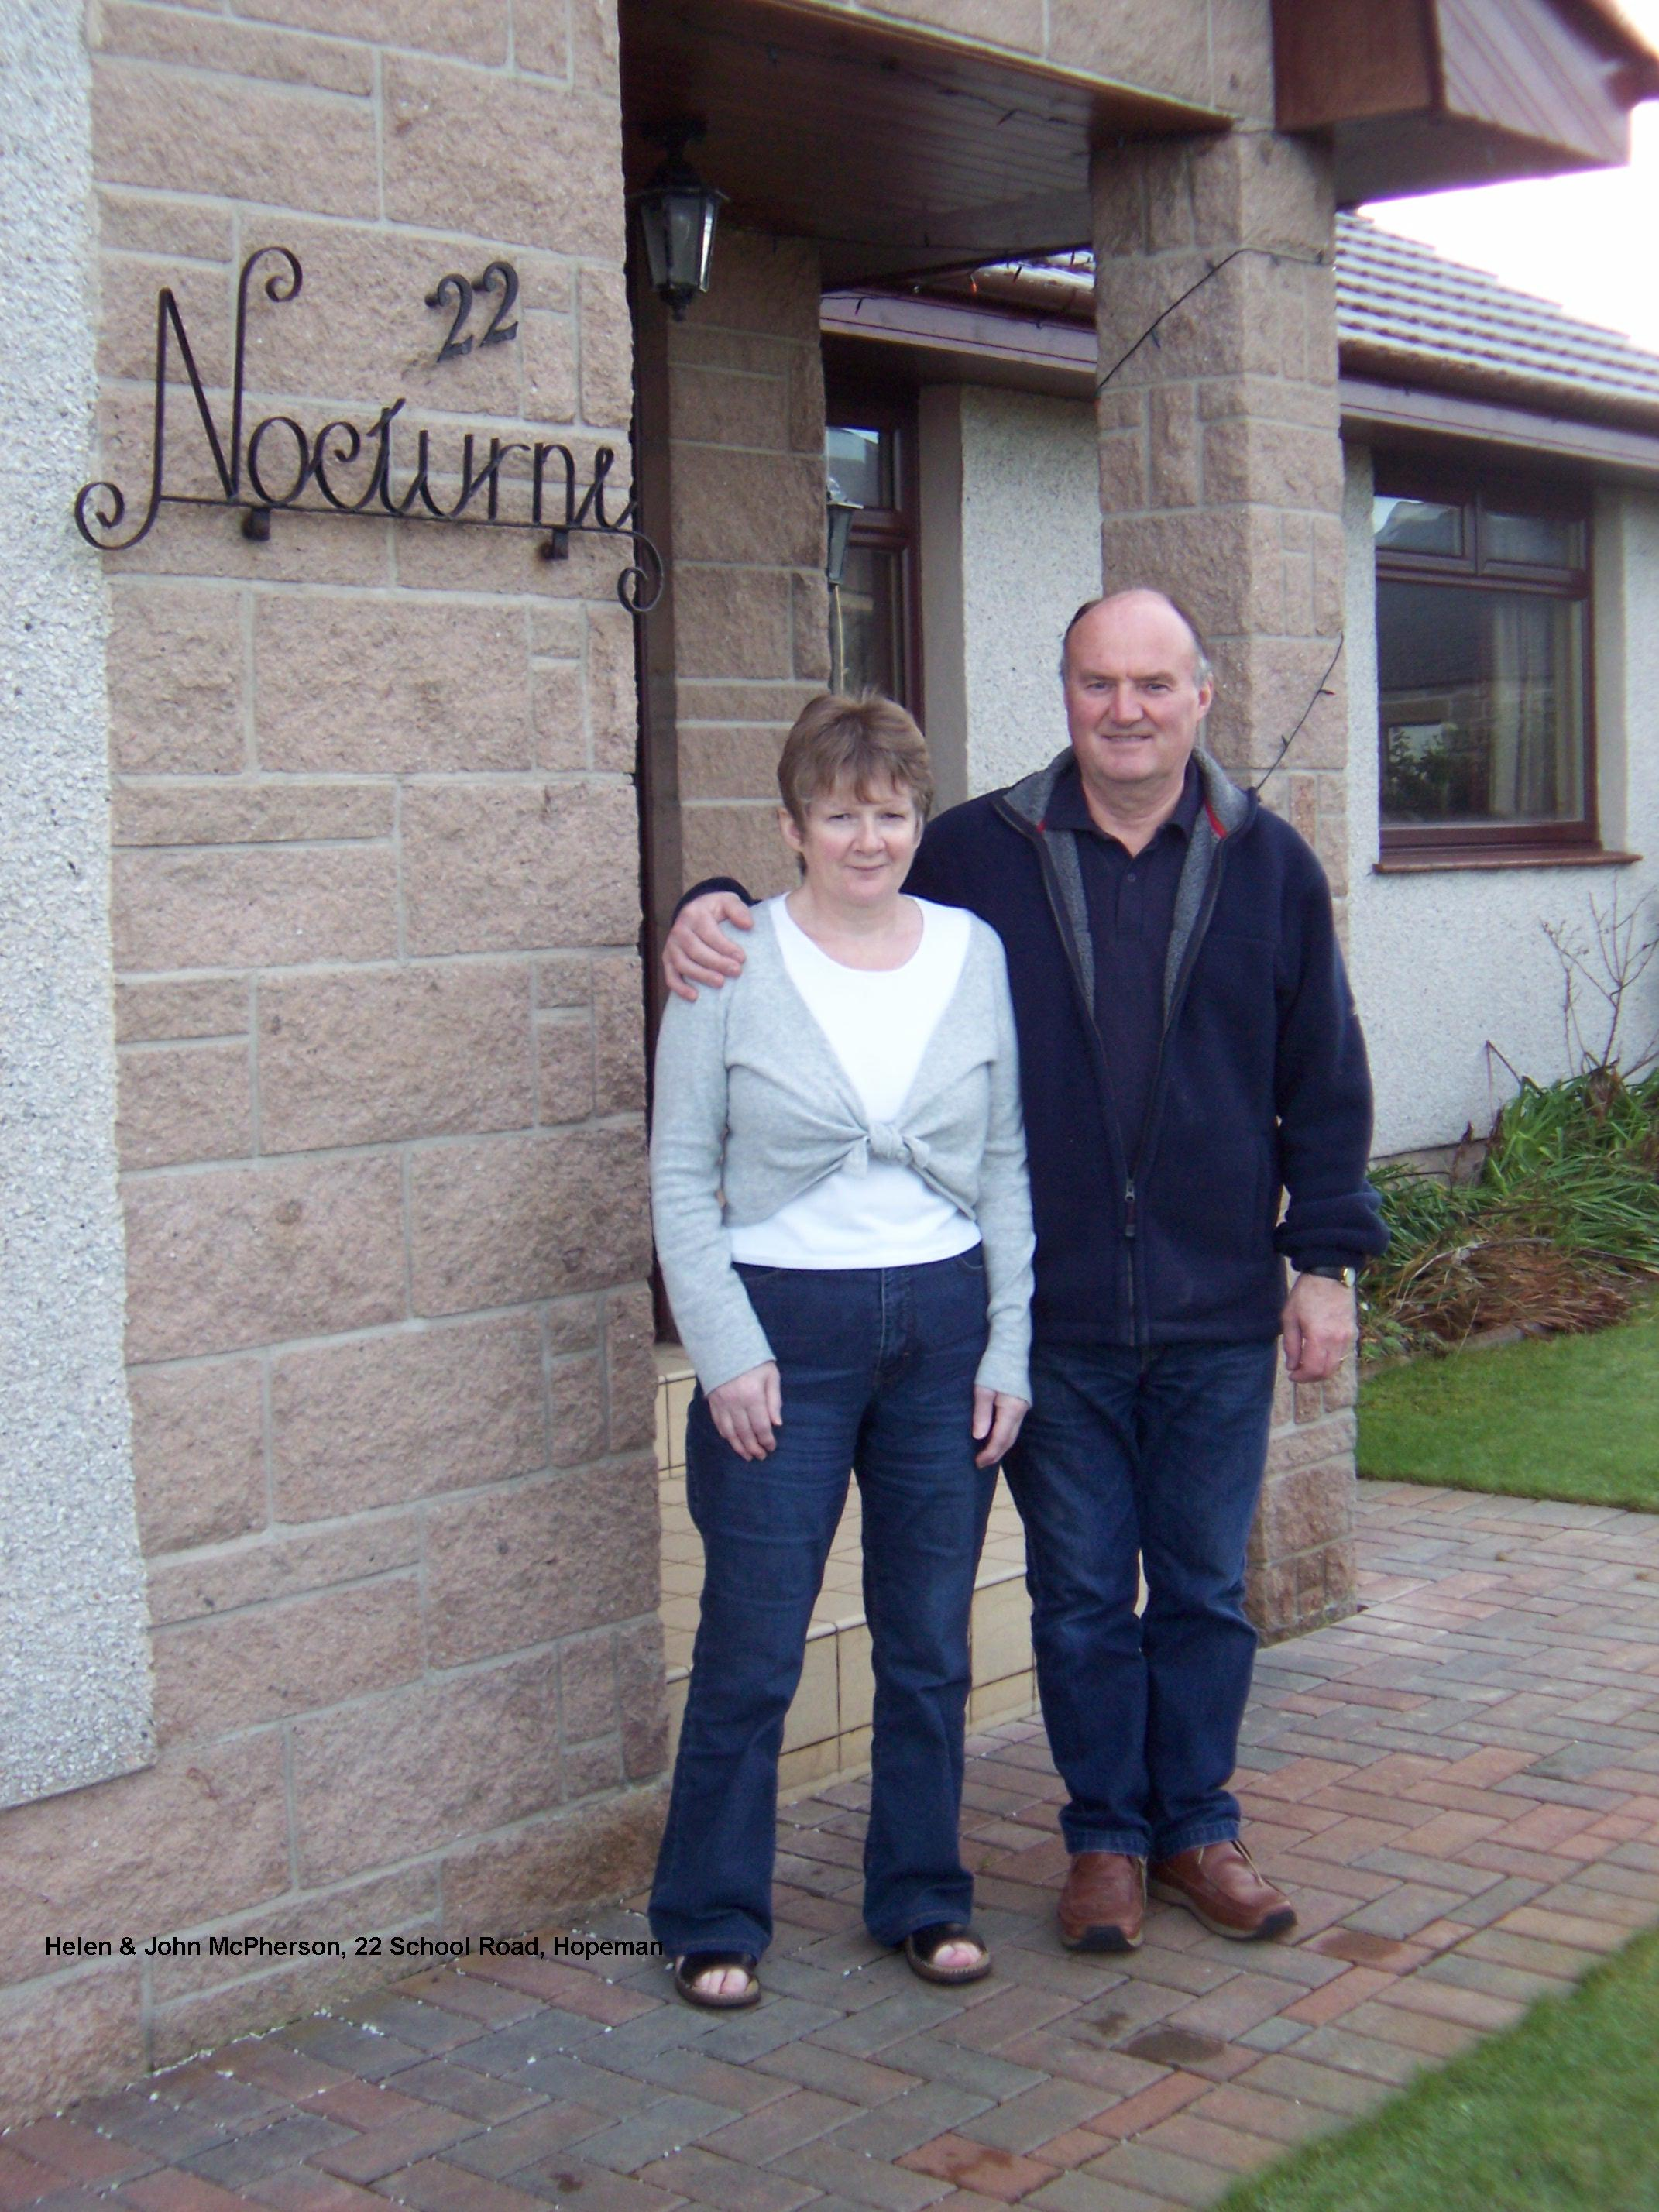 2005- Helen & John McPherson 22 School Road